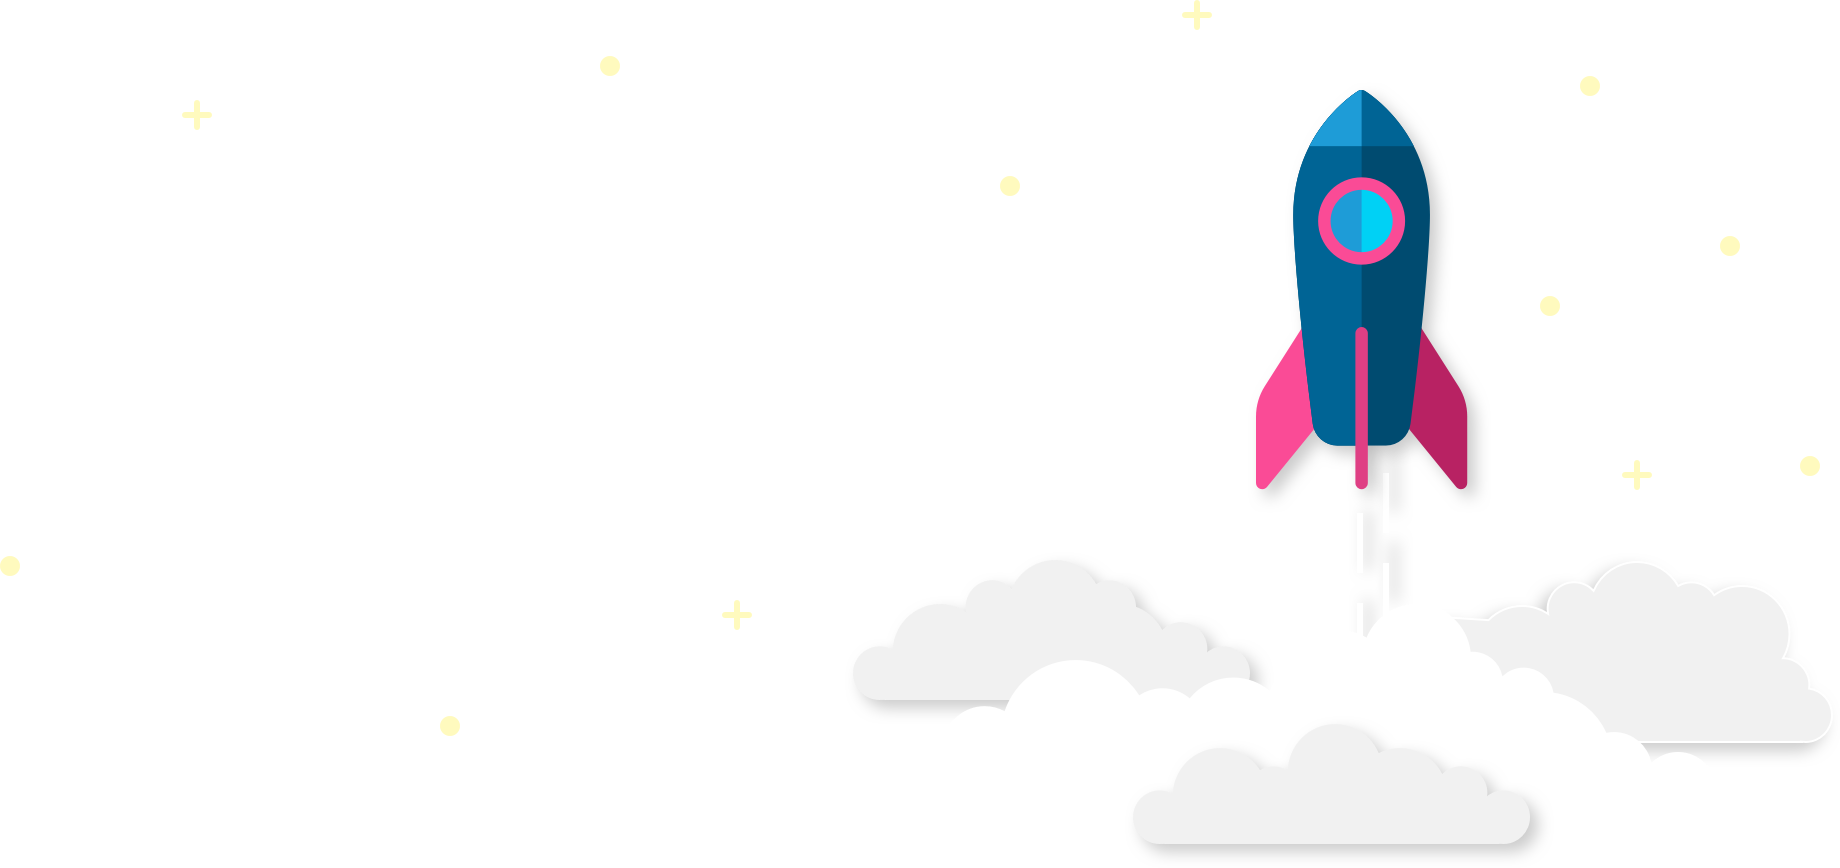 rocket into the clouds with stars